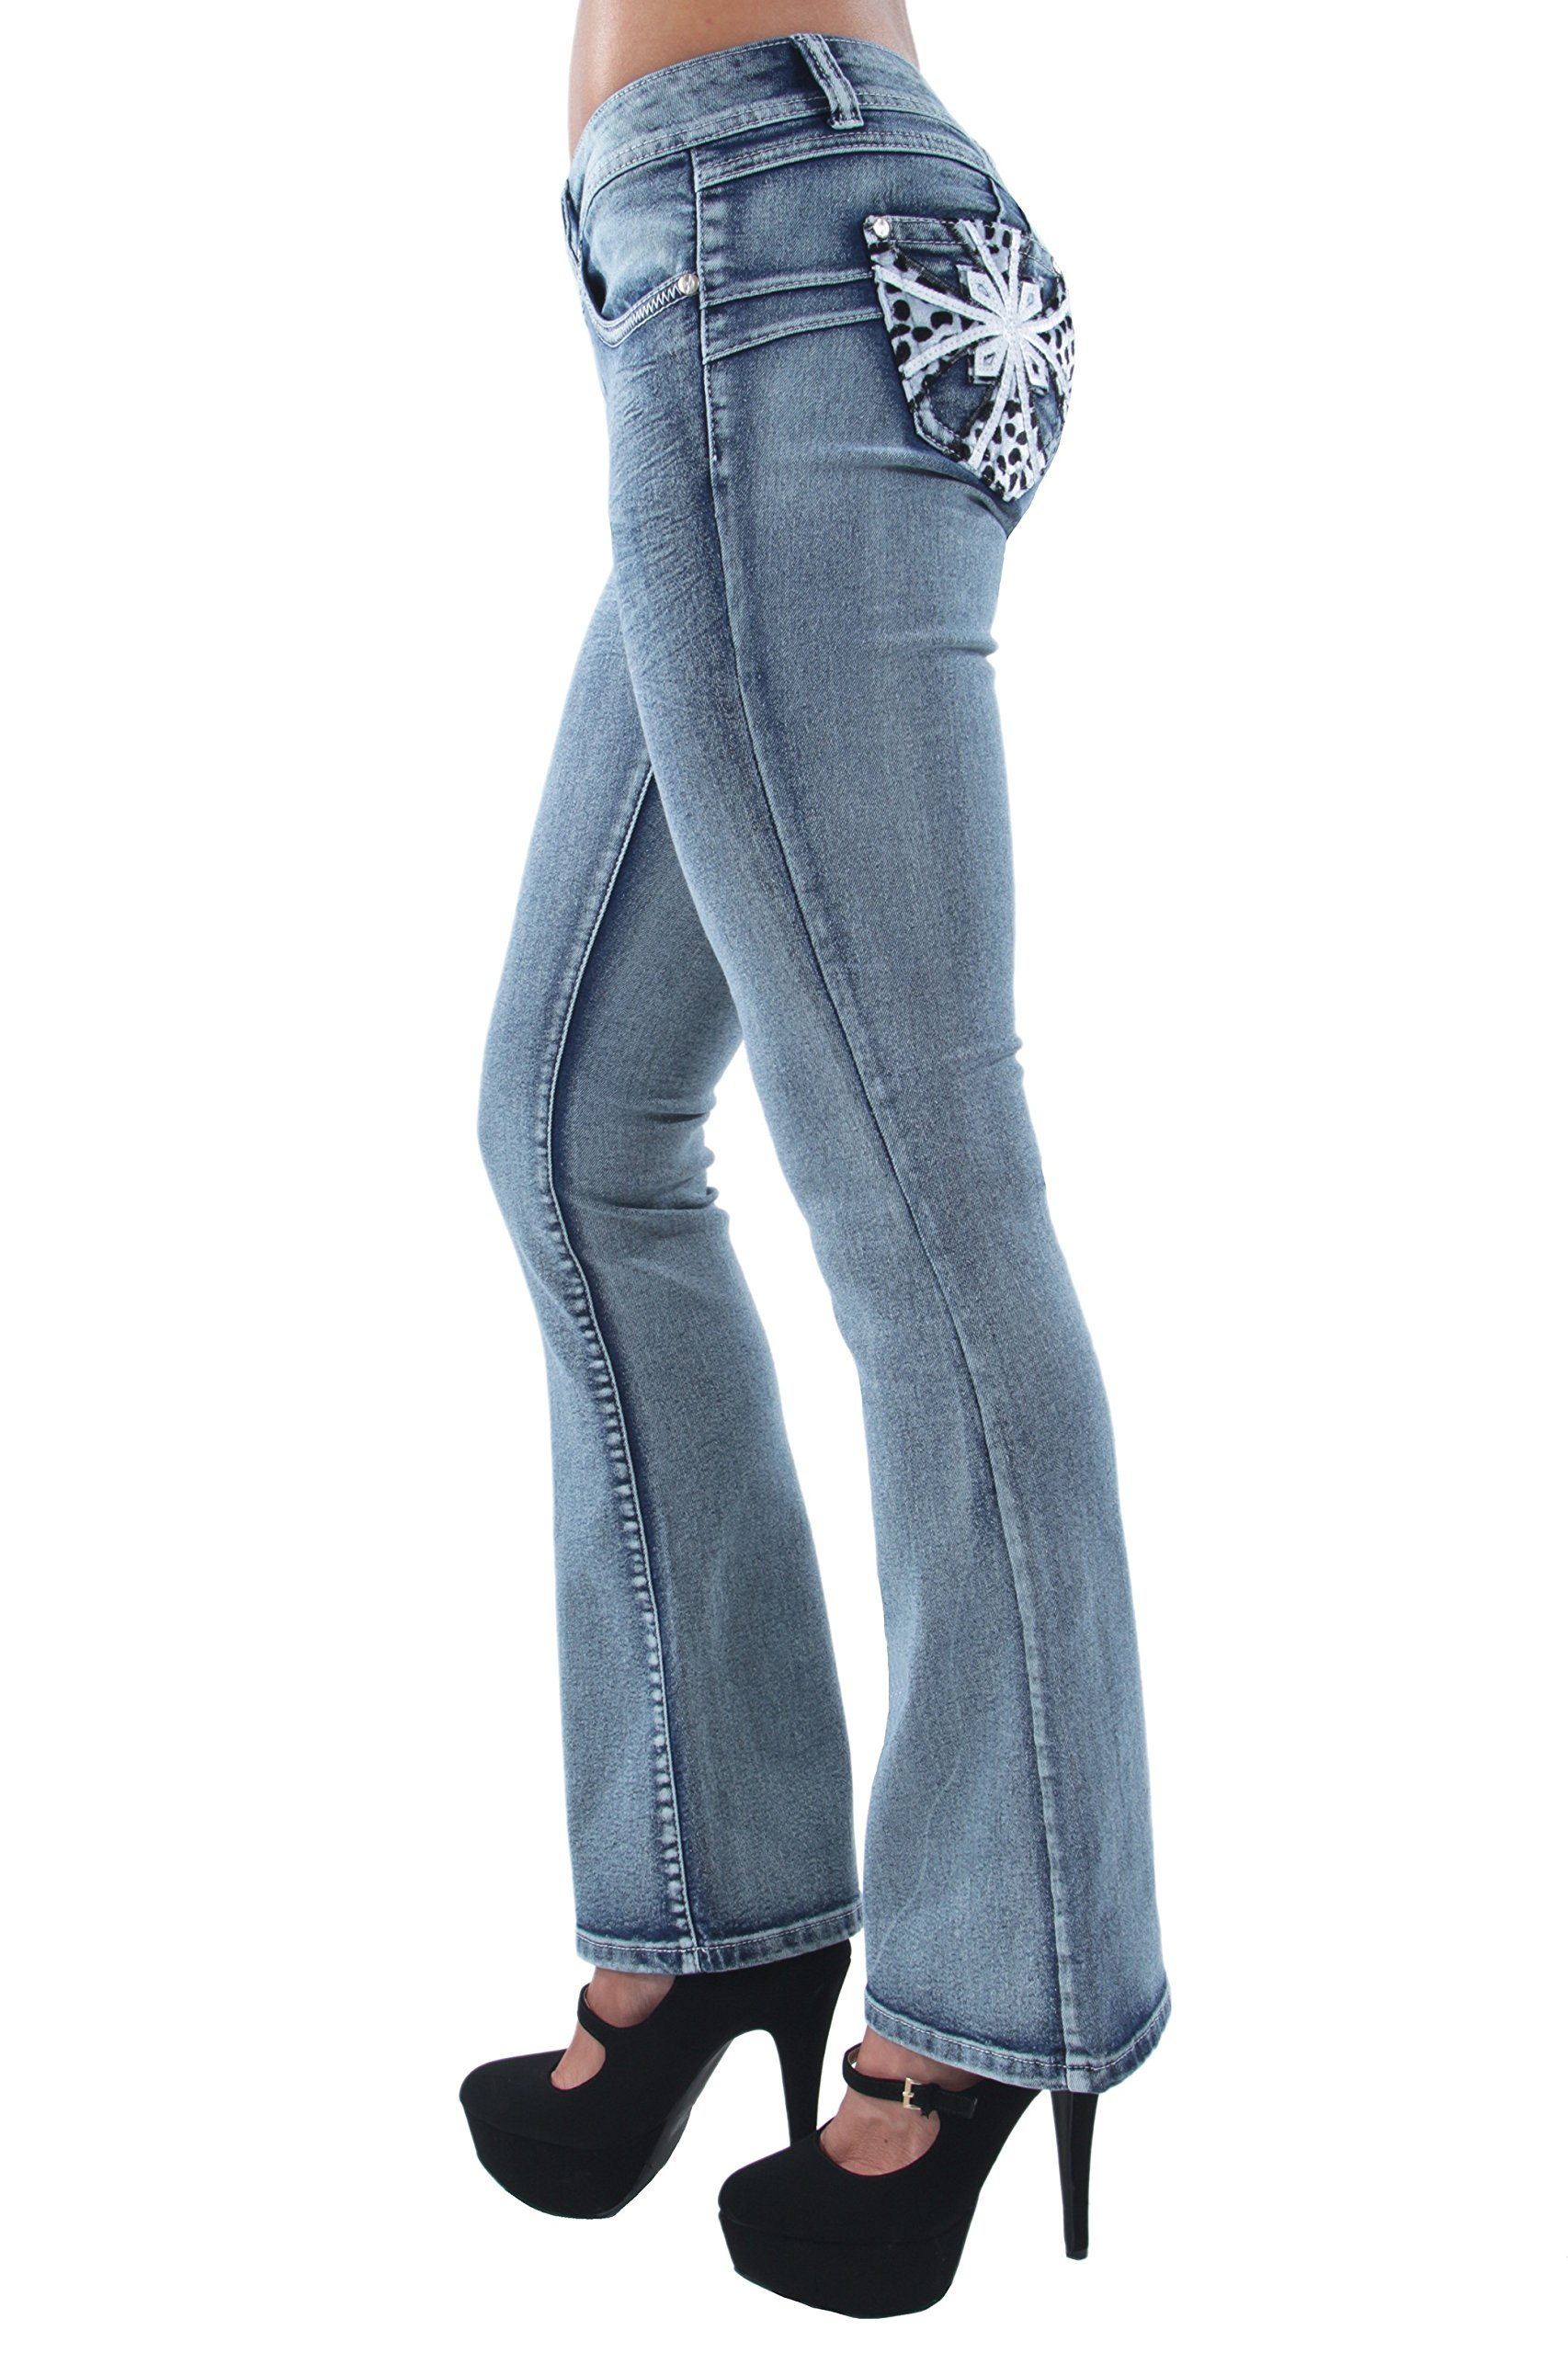 Fashion2Love F2L-35057(F)-BT – Colombian Design, Butt Lift, Levanta Cola, Boot Leg Jeans in Washed Blue Size 3